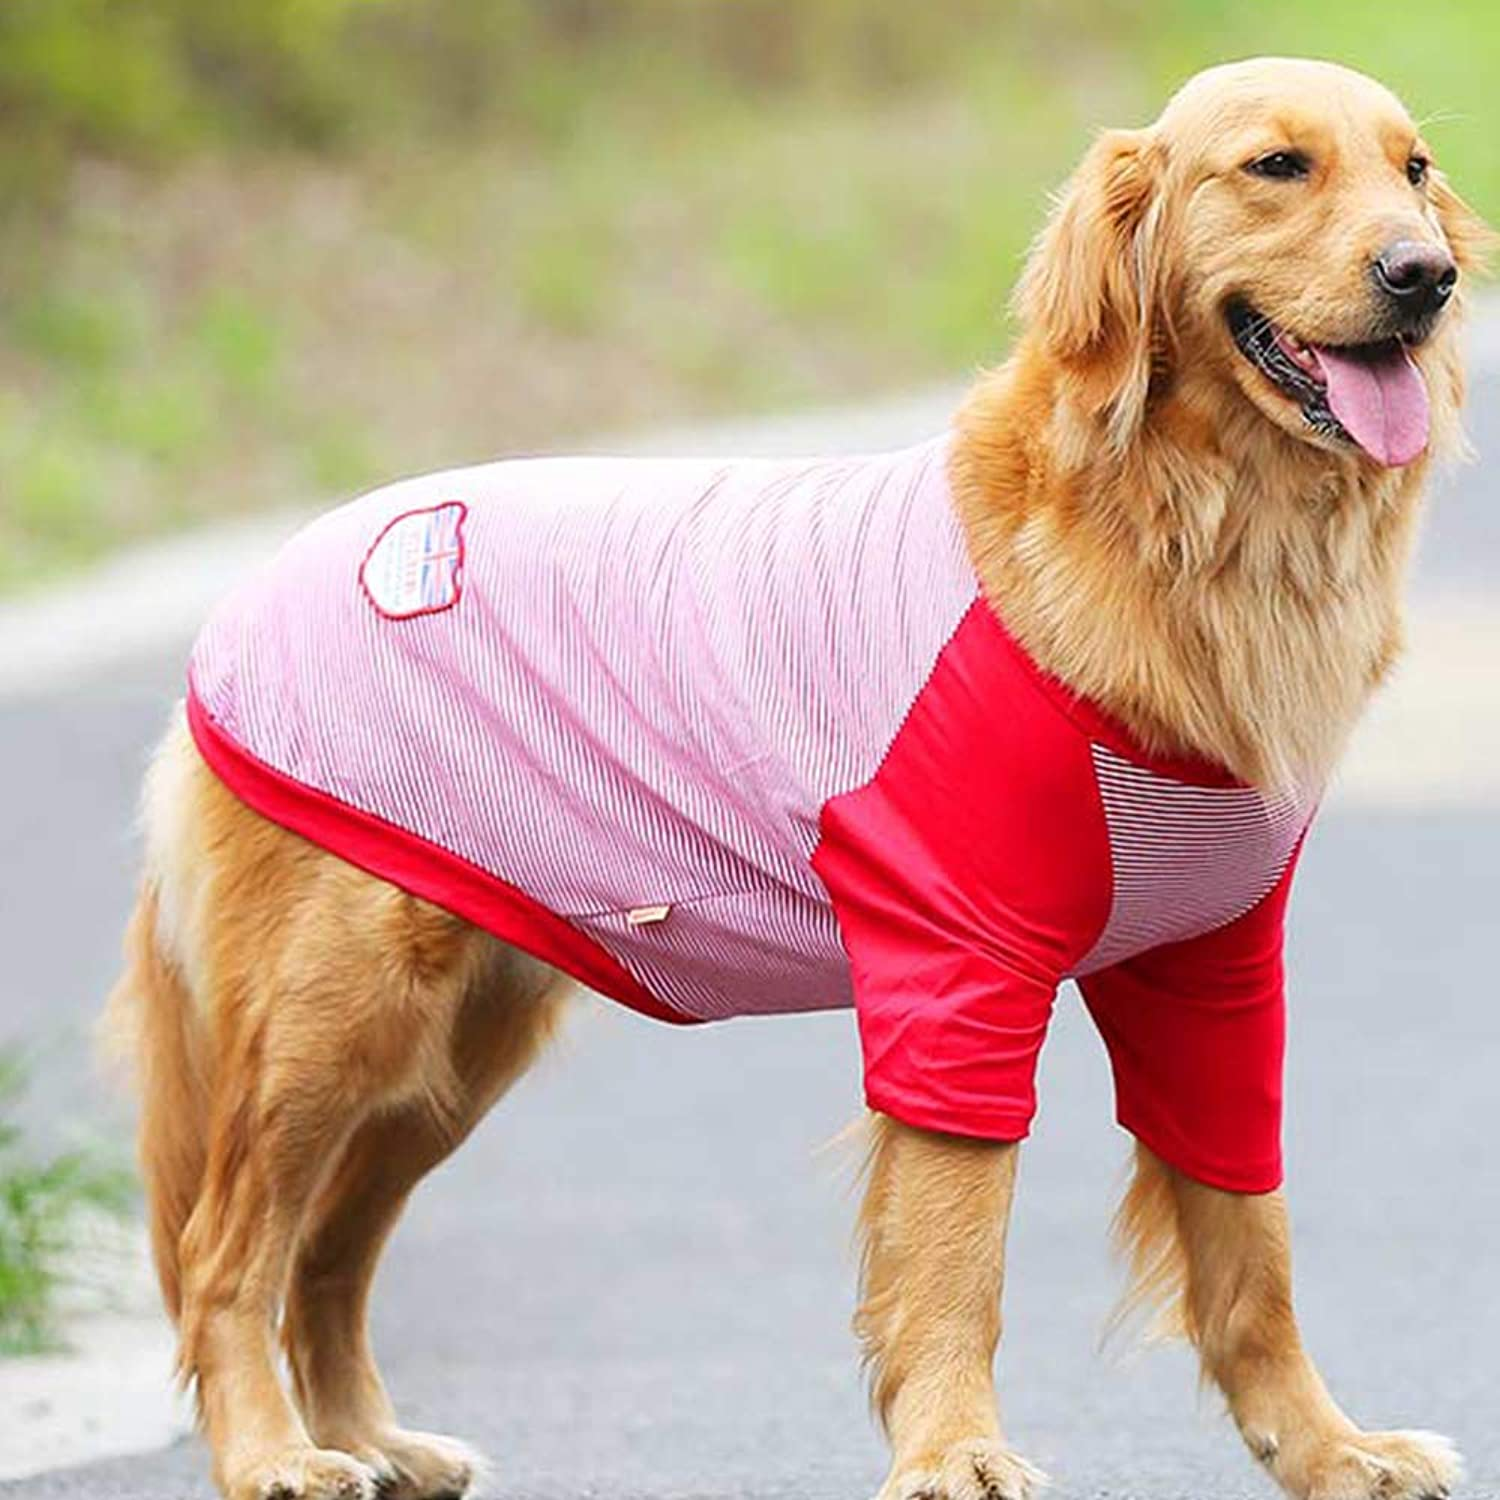 Pet TShirt Summer Clothe,Summer Shirt Small Dog cat pet Clothe Vest t Shirt,pet Clothes for Summer, Apparel Large Pet Clothes for Dog Cute Soft Vest,Red,4XL